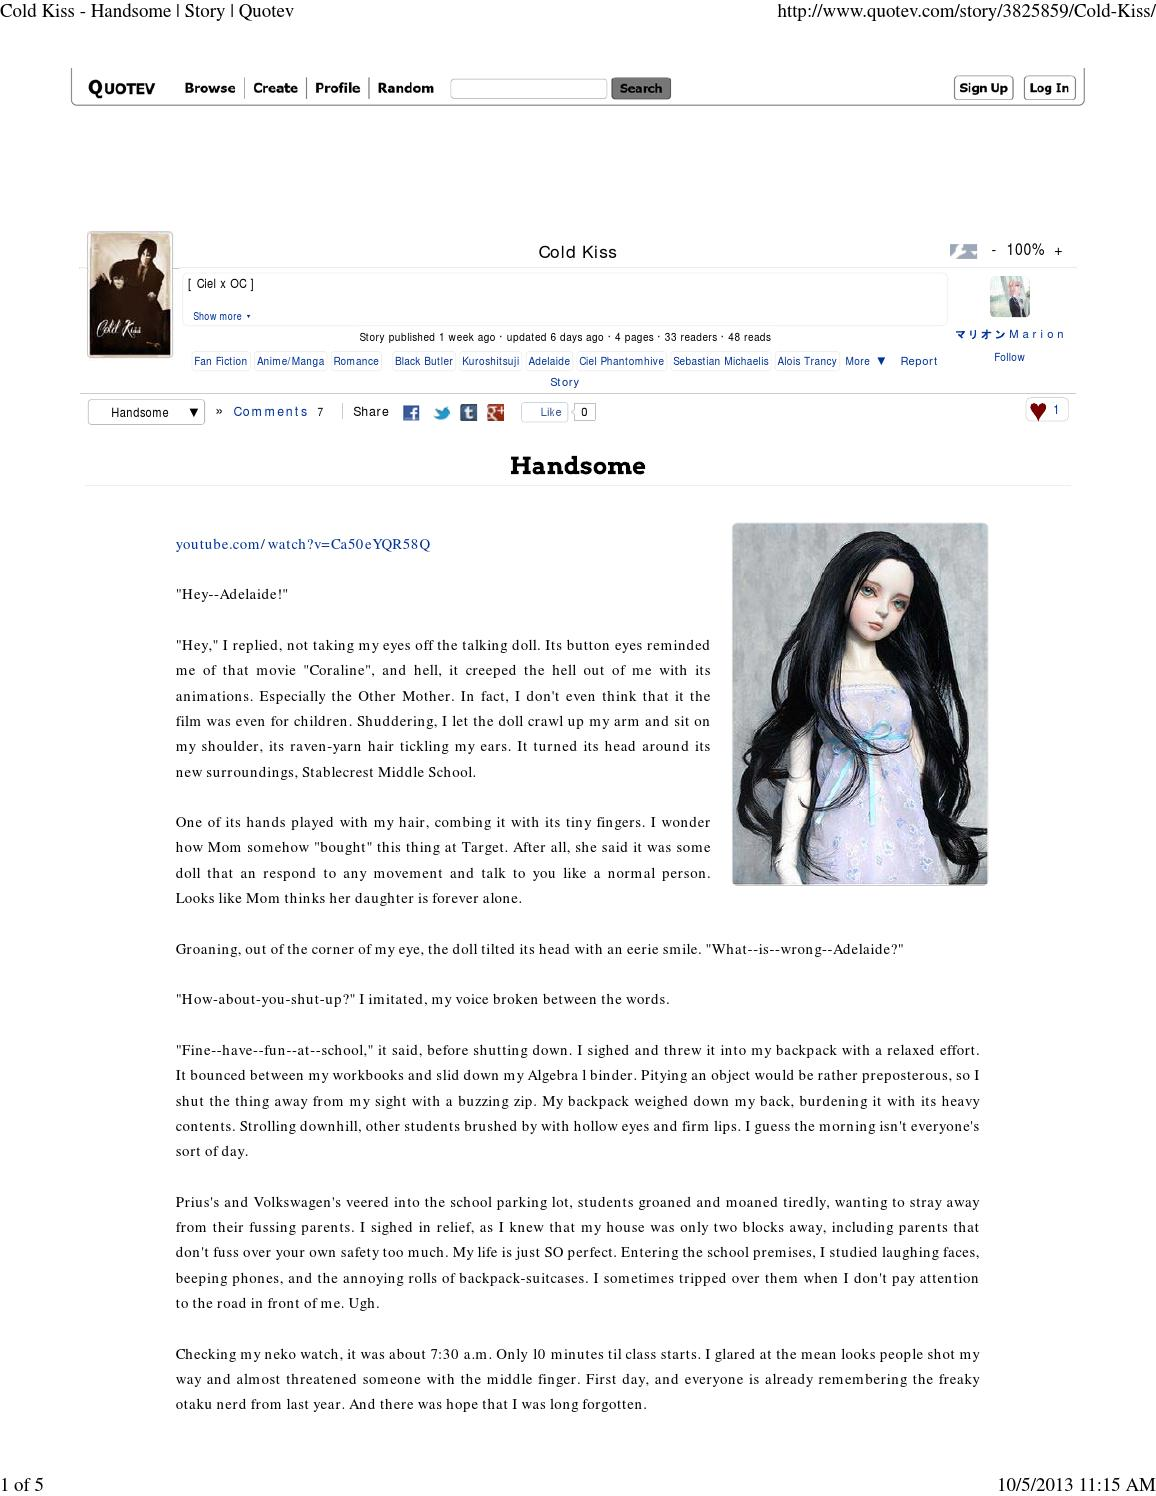 Cold kiss handsome story quotev by Dean Dochterman - issuu